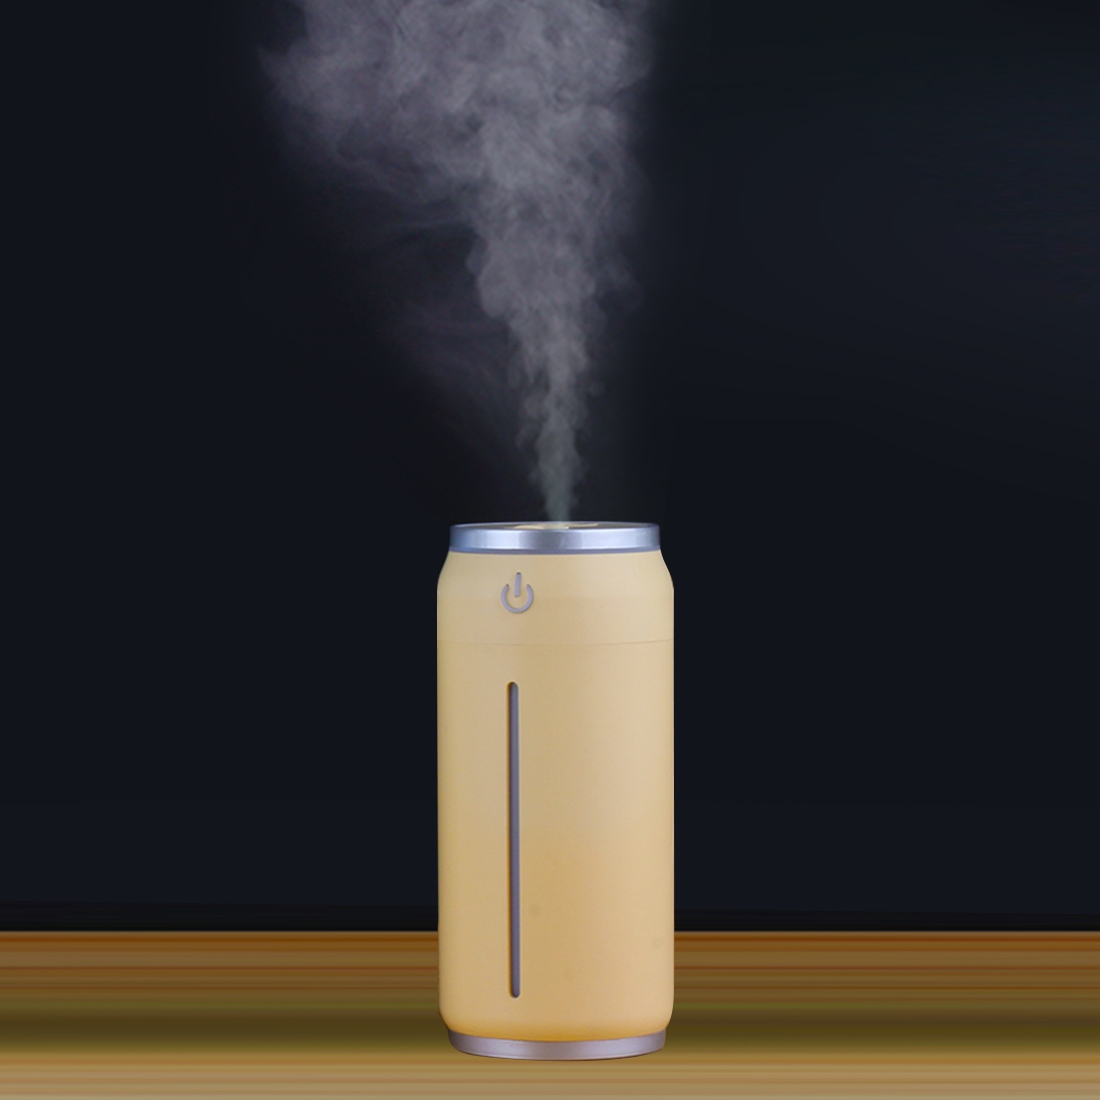 Mini Portable Misty Can Shape Mute Desktop Air Humidifier with Extended USB Port (Apricot)